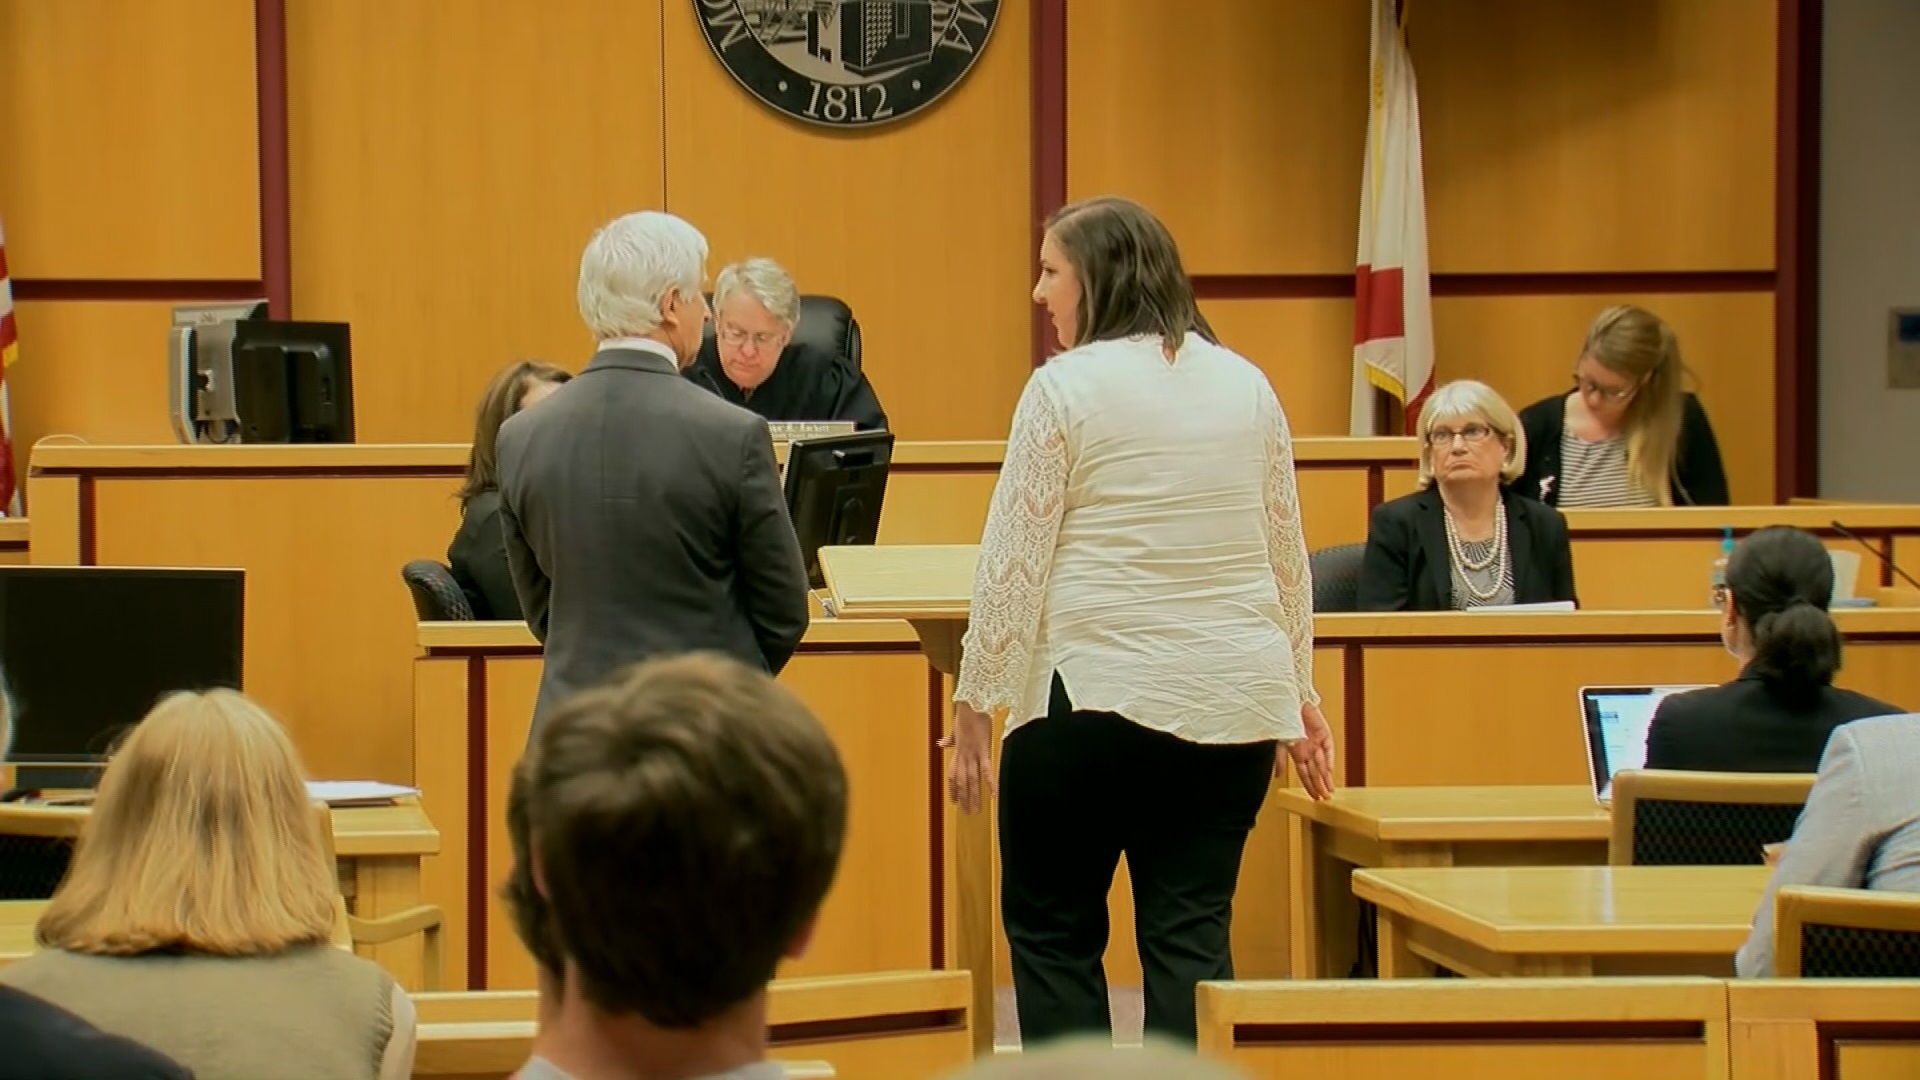 wilkins-in-court-pic_278186